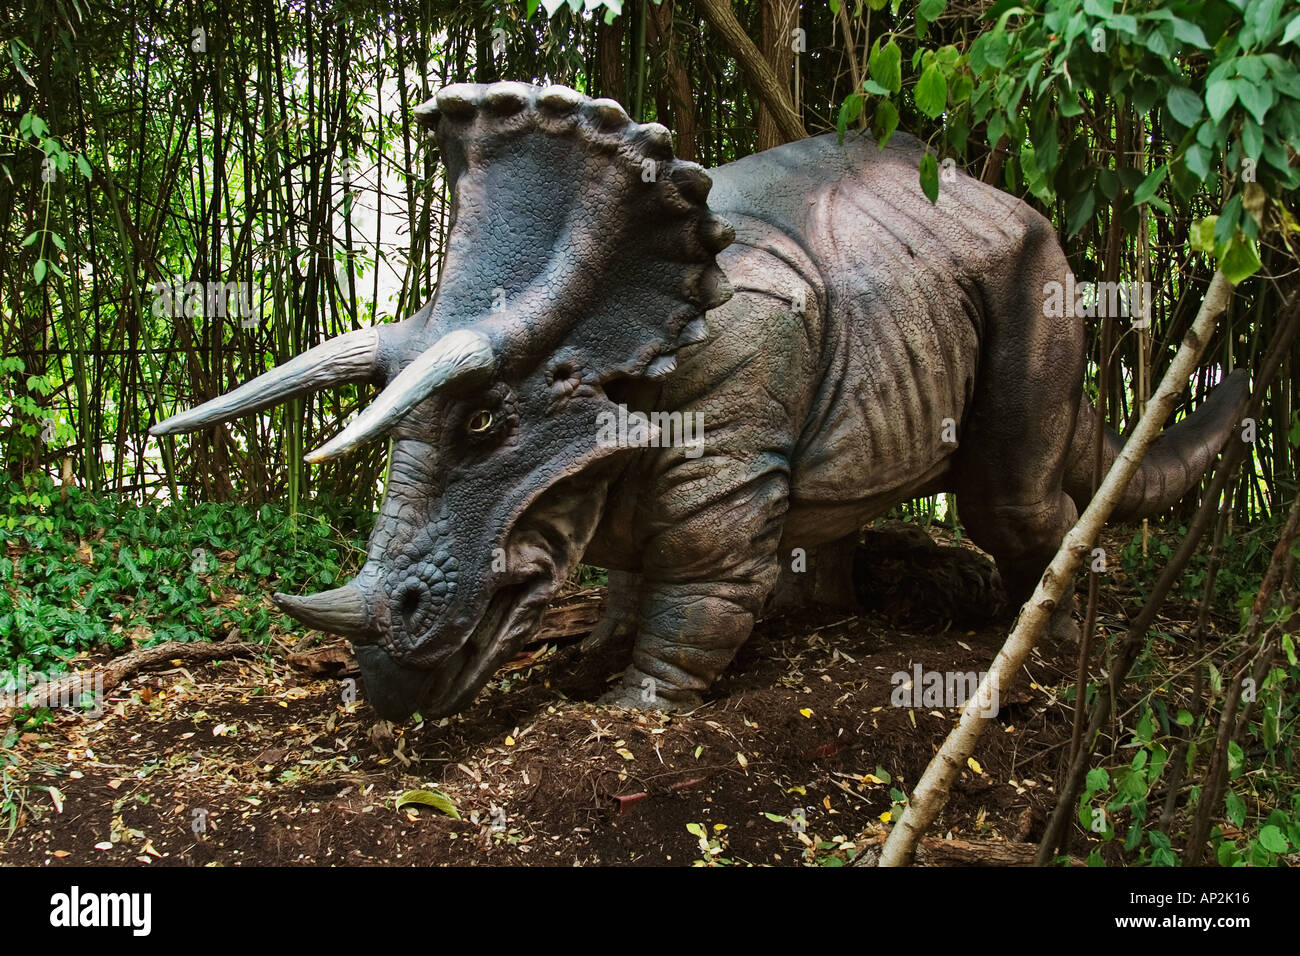 Triceratops which means three horned face dinosaur from the late Cretaceous period Goes to a length of 29 5 feet and weigh - Stock Image